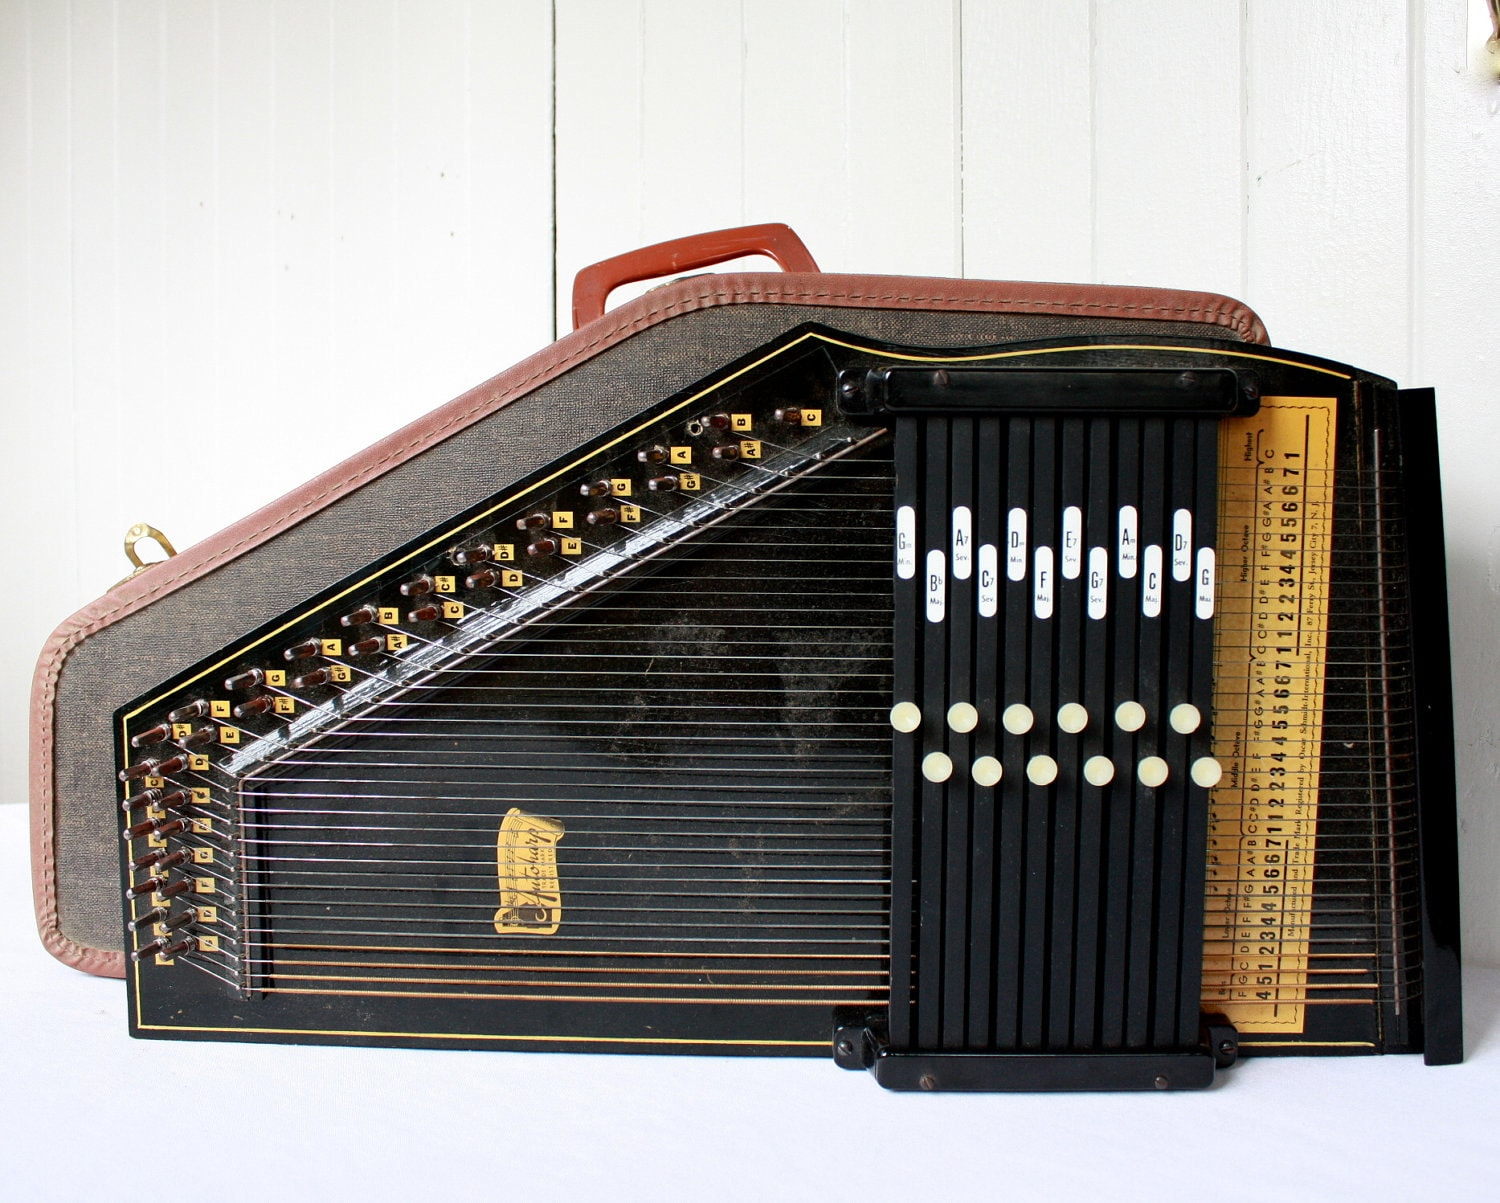 Aluminum String Anchor as well Freedom Harp Canvas Bag as well Autoharp further Sparrowharp Left Handed 18 Bar likewise 1609480 Oscar Schmidt 21 Chord Autoharp Solid Spruce Top Mahg Back Os10021 W Soft Case. on oscar schmidt autoharp parts